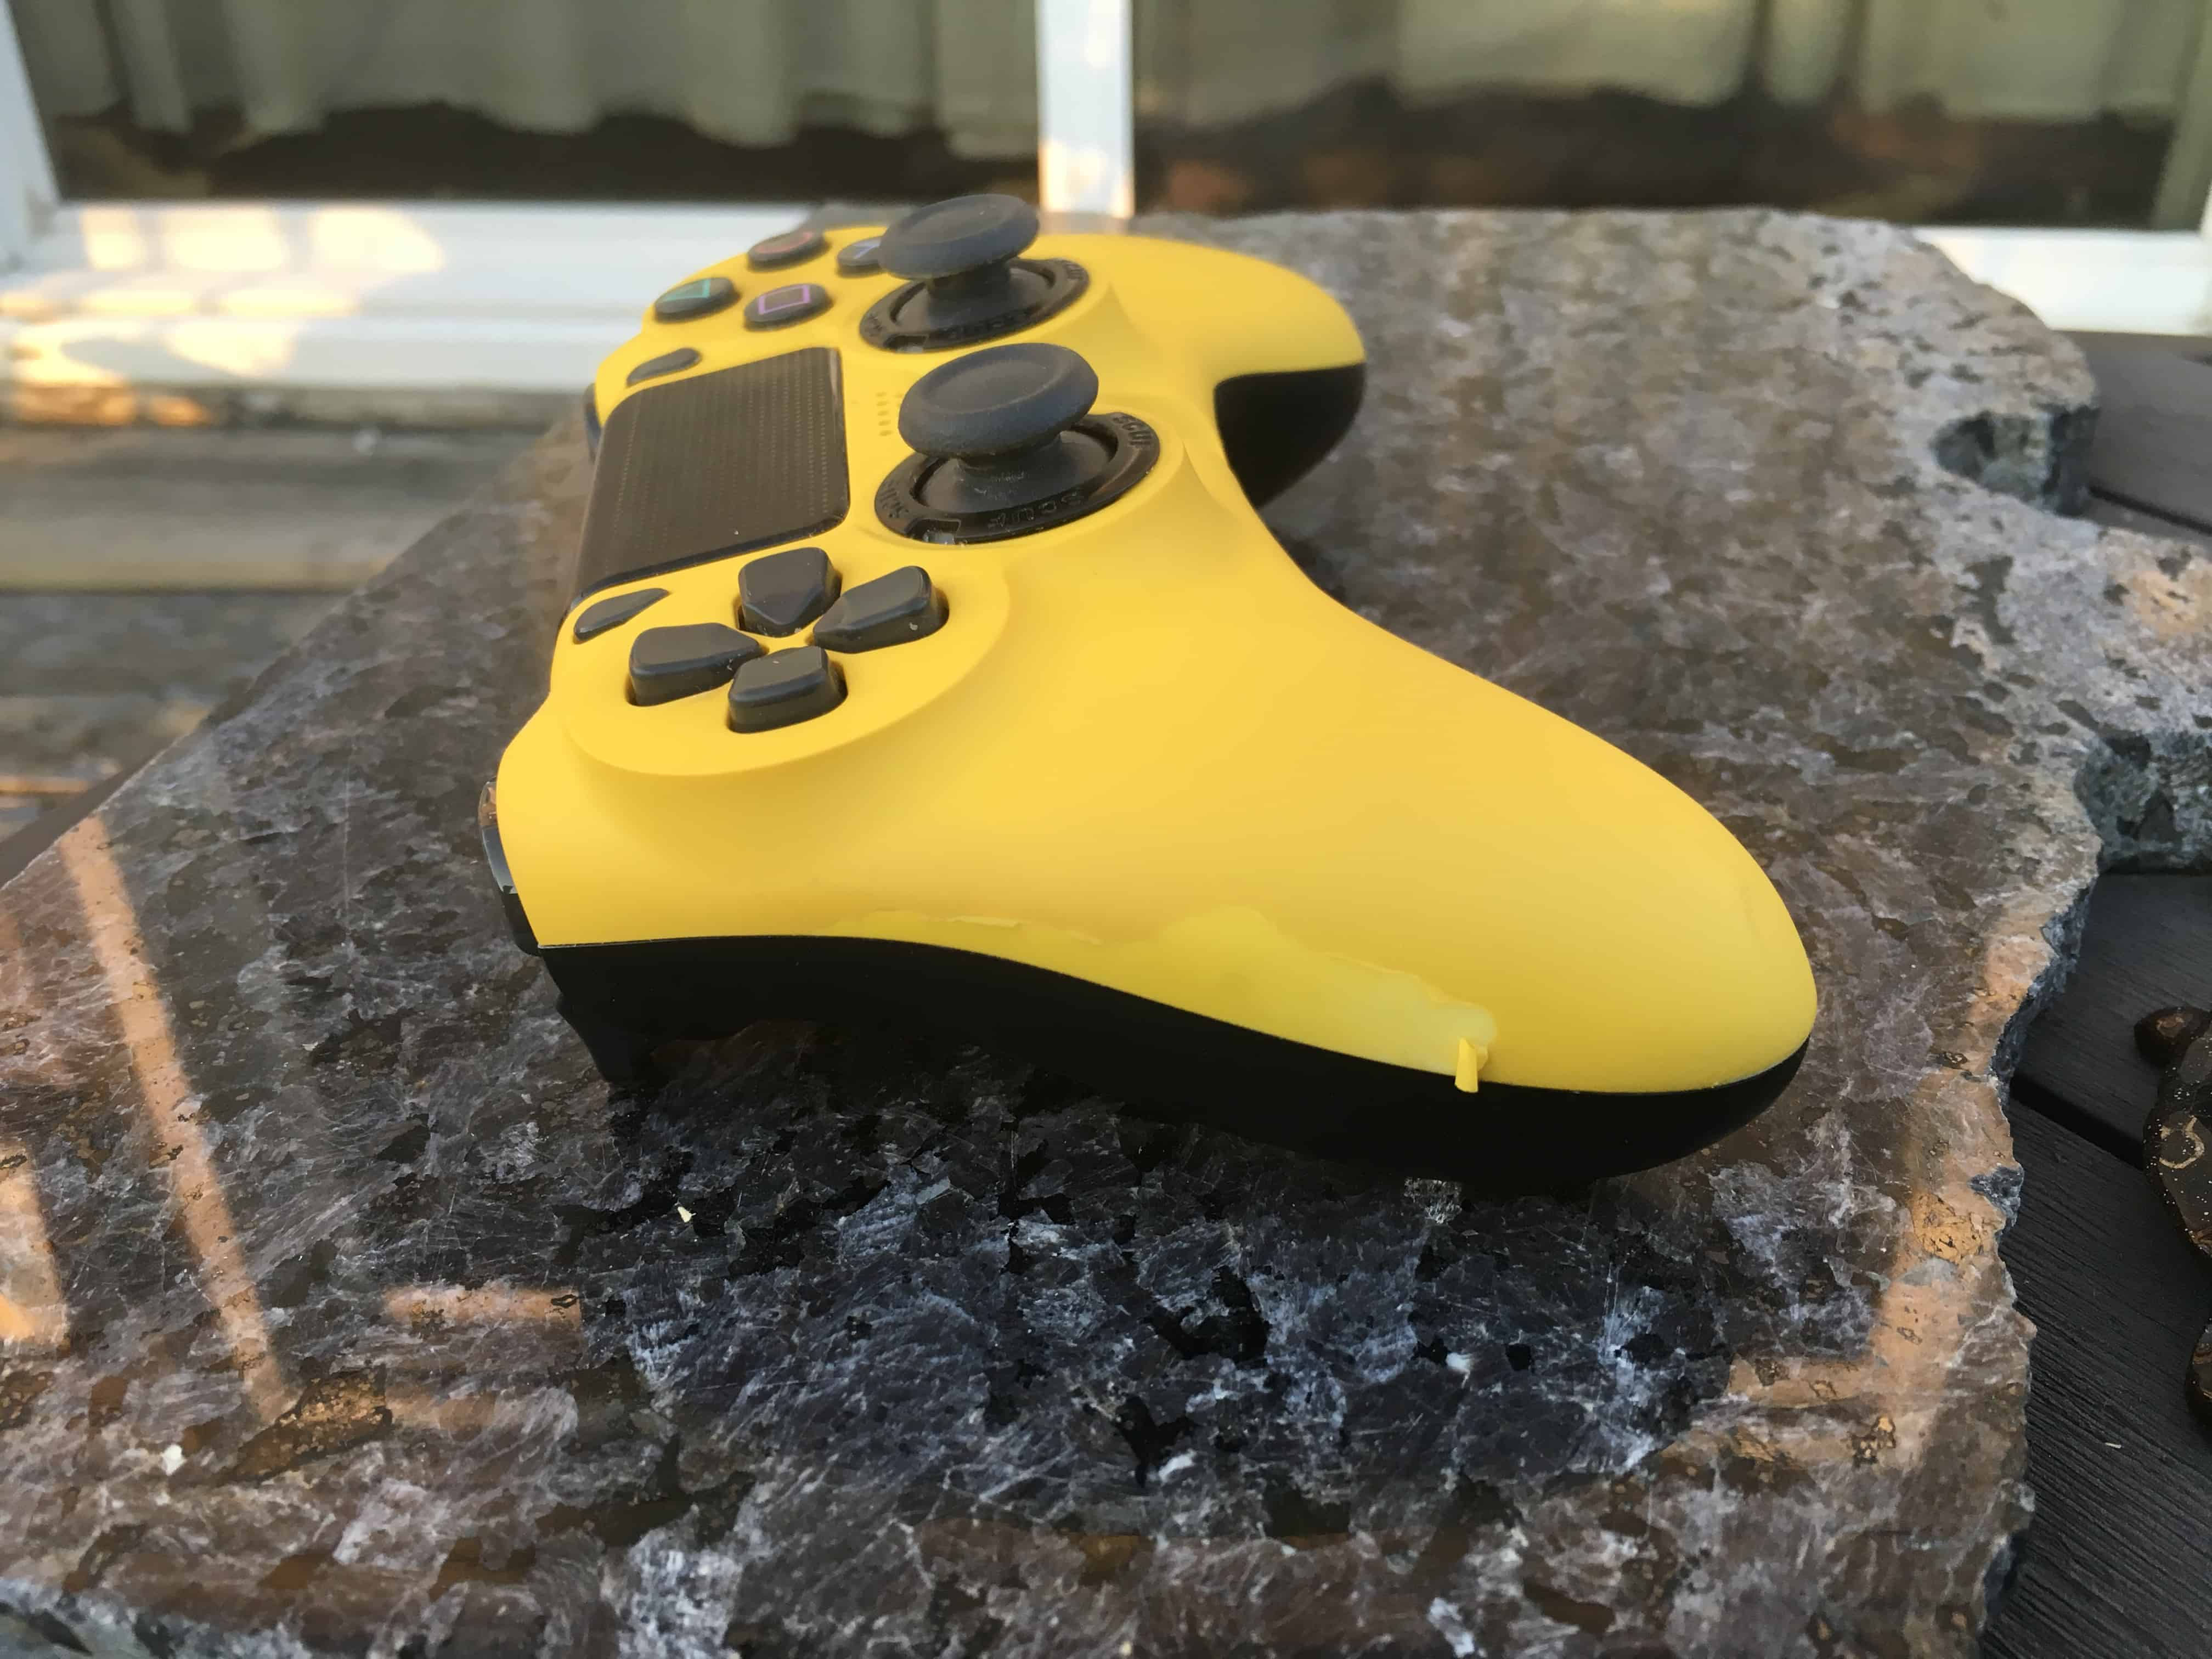 Scuf Impact coating coming off